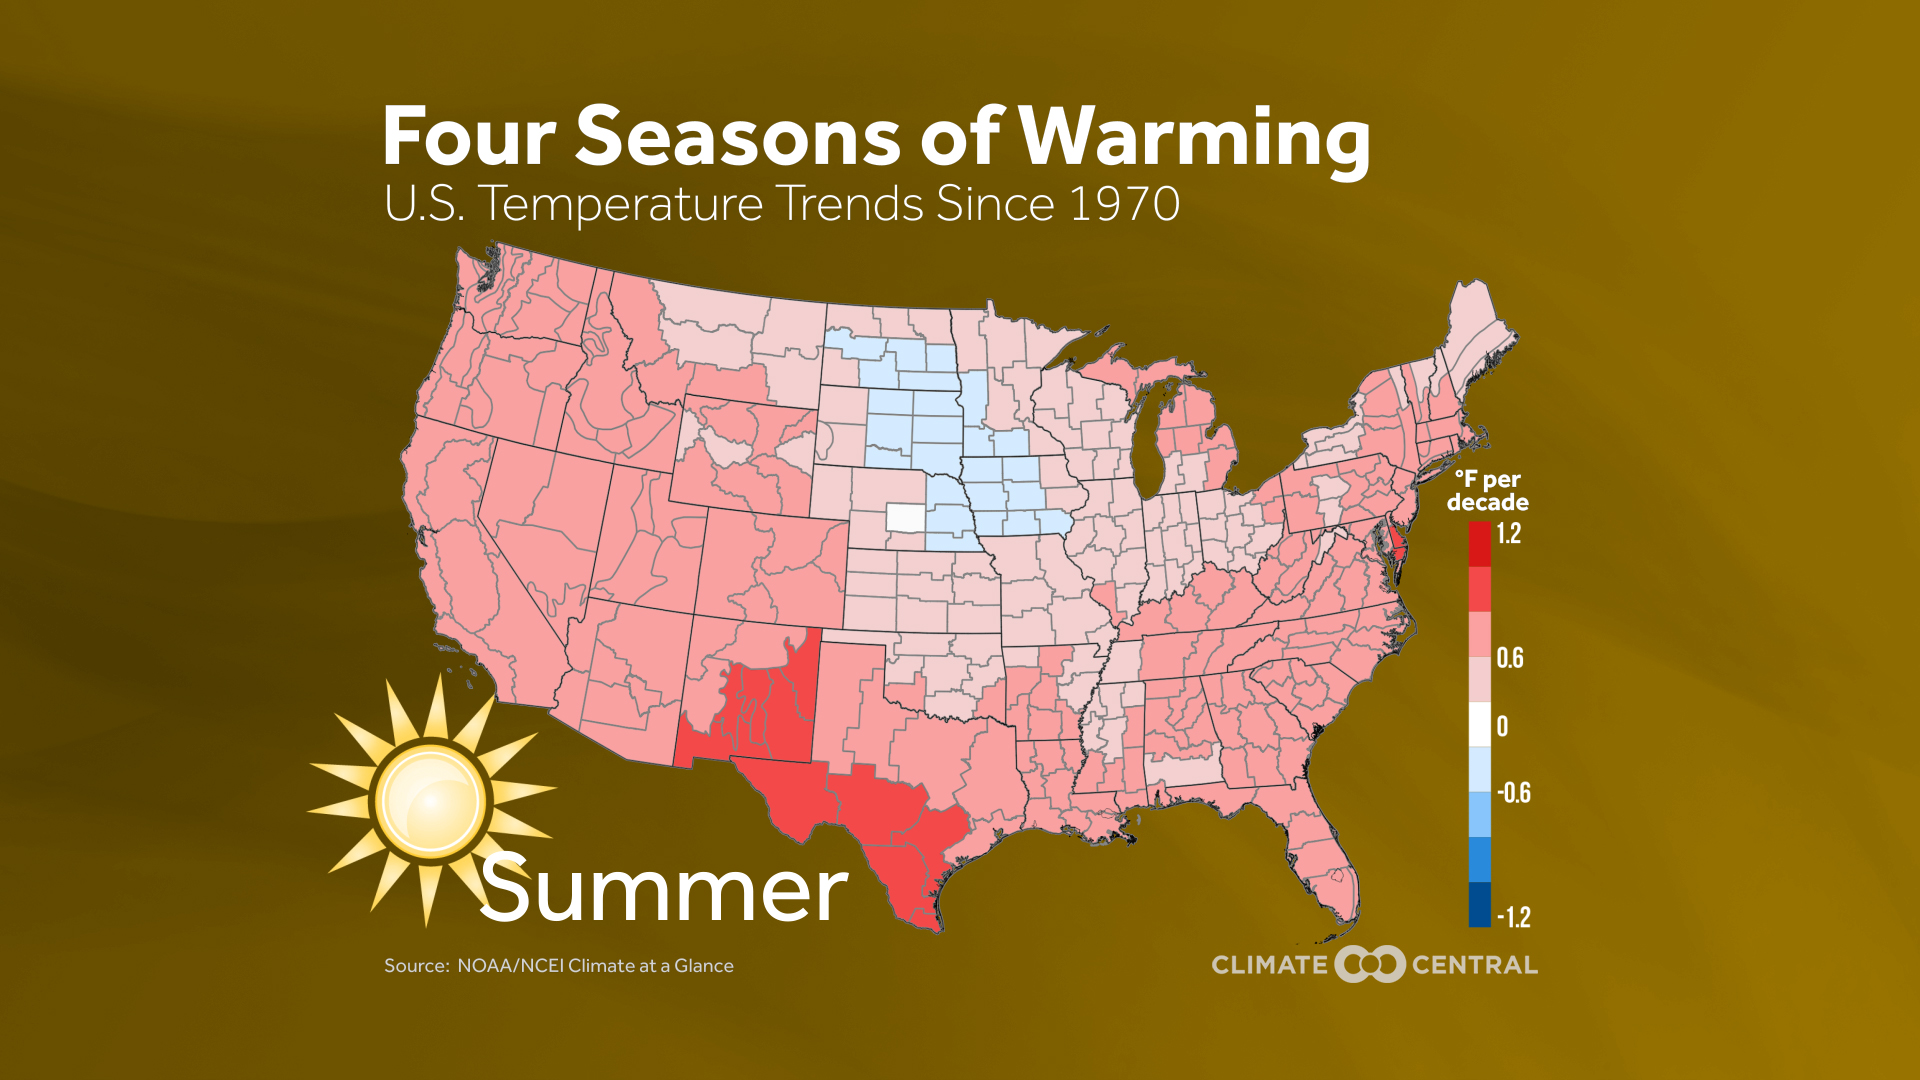 summer warming trends in the U.S.